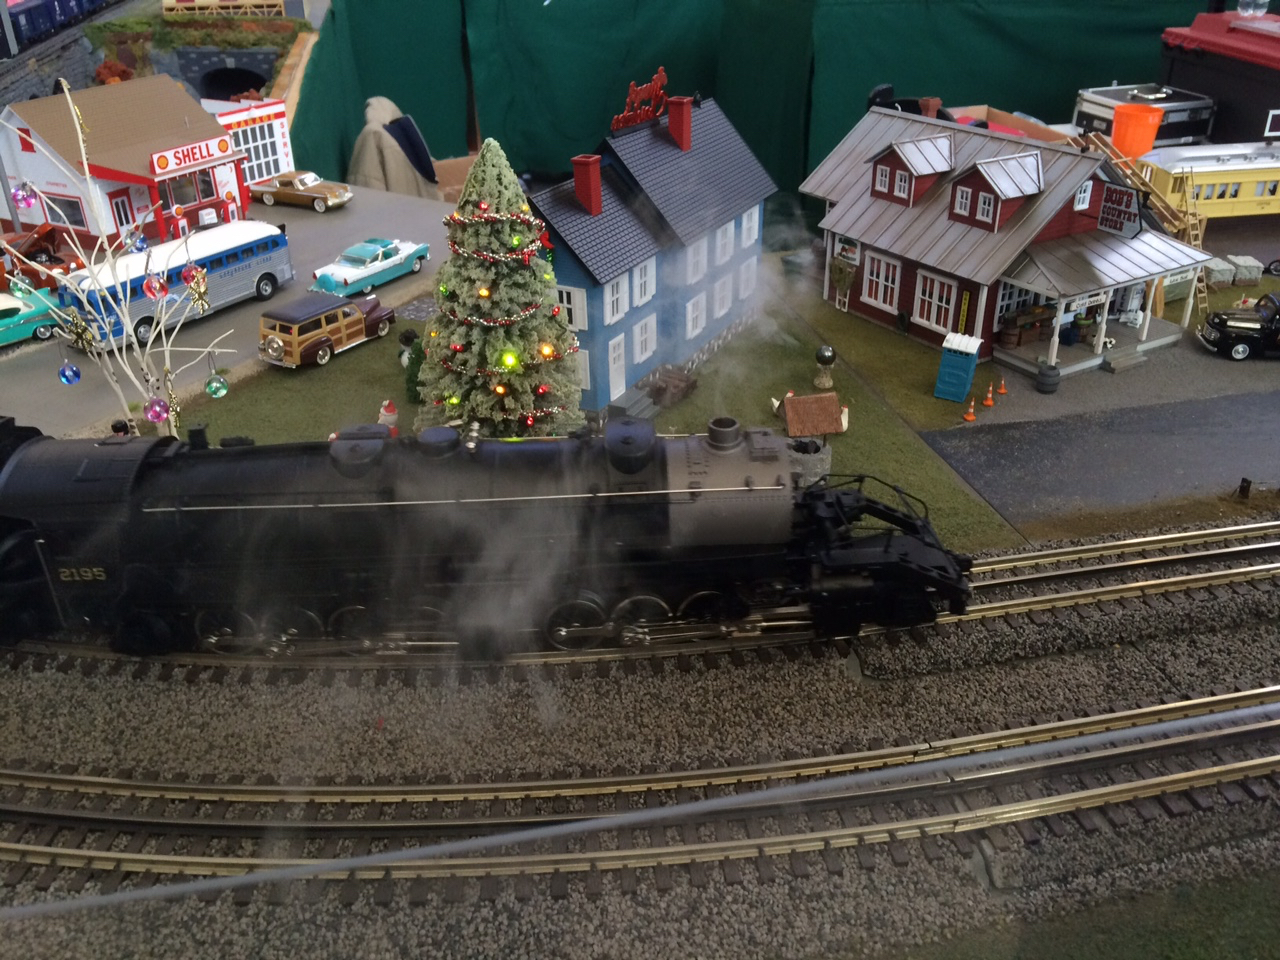 All Aboard! Annual Model Railroad Show At The Science Museum Is Great For All Ages